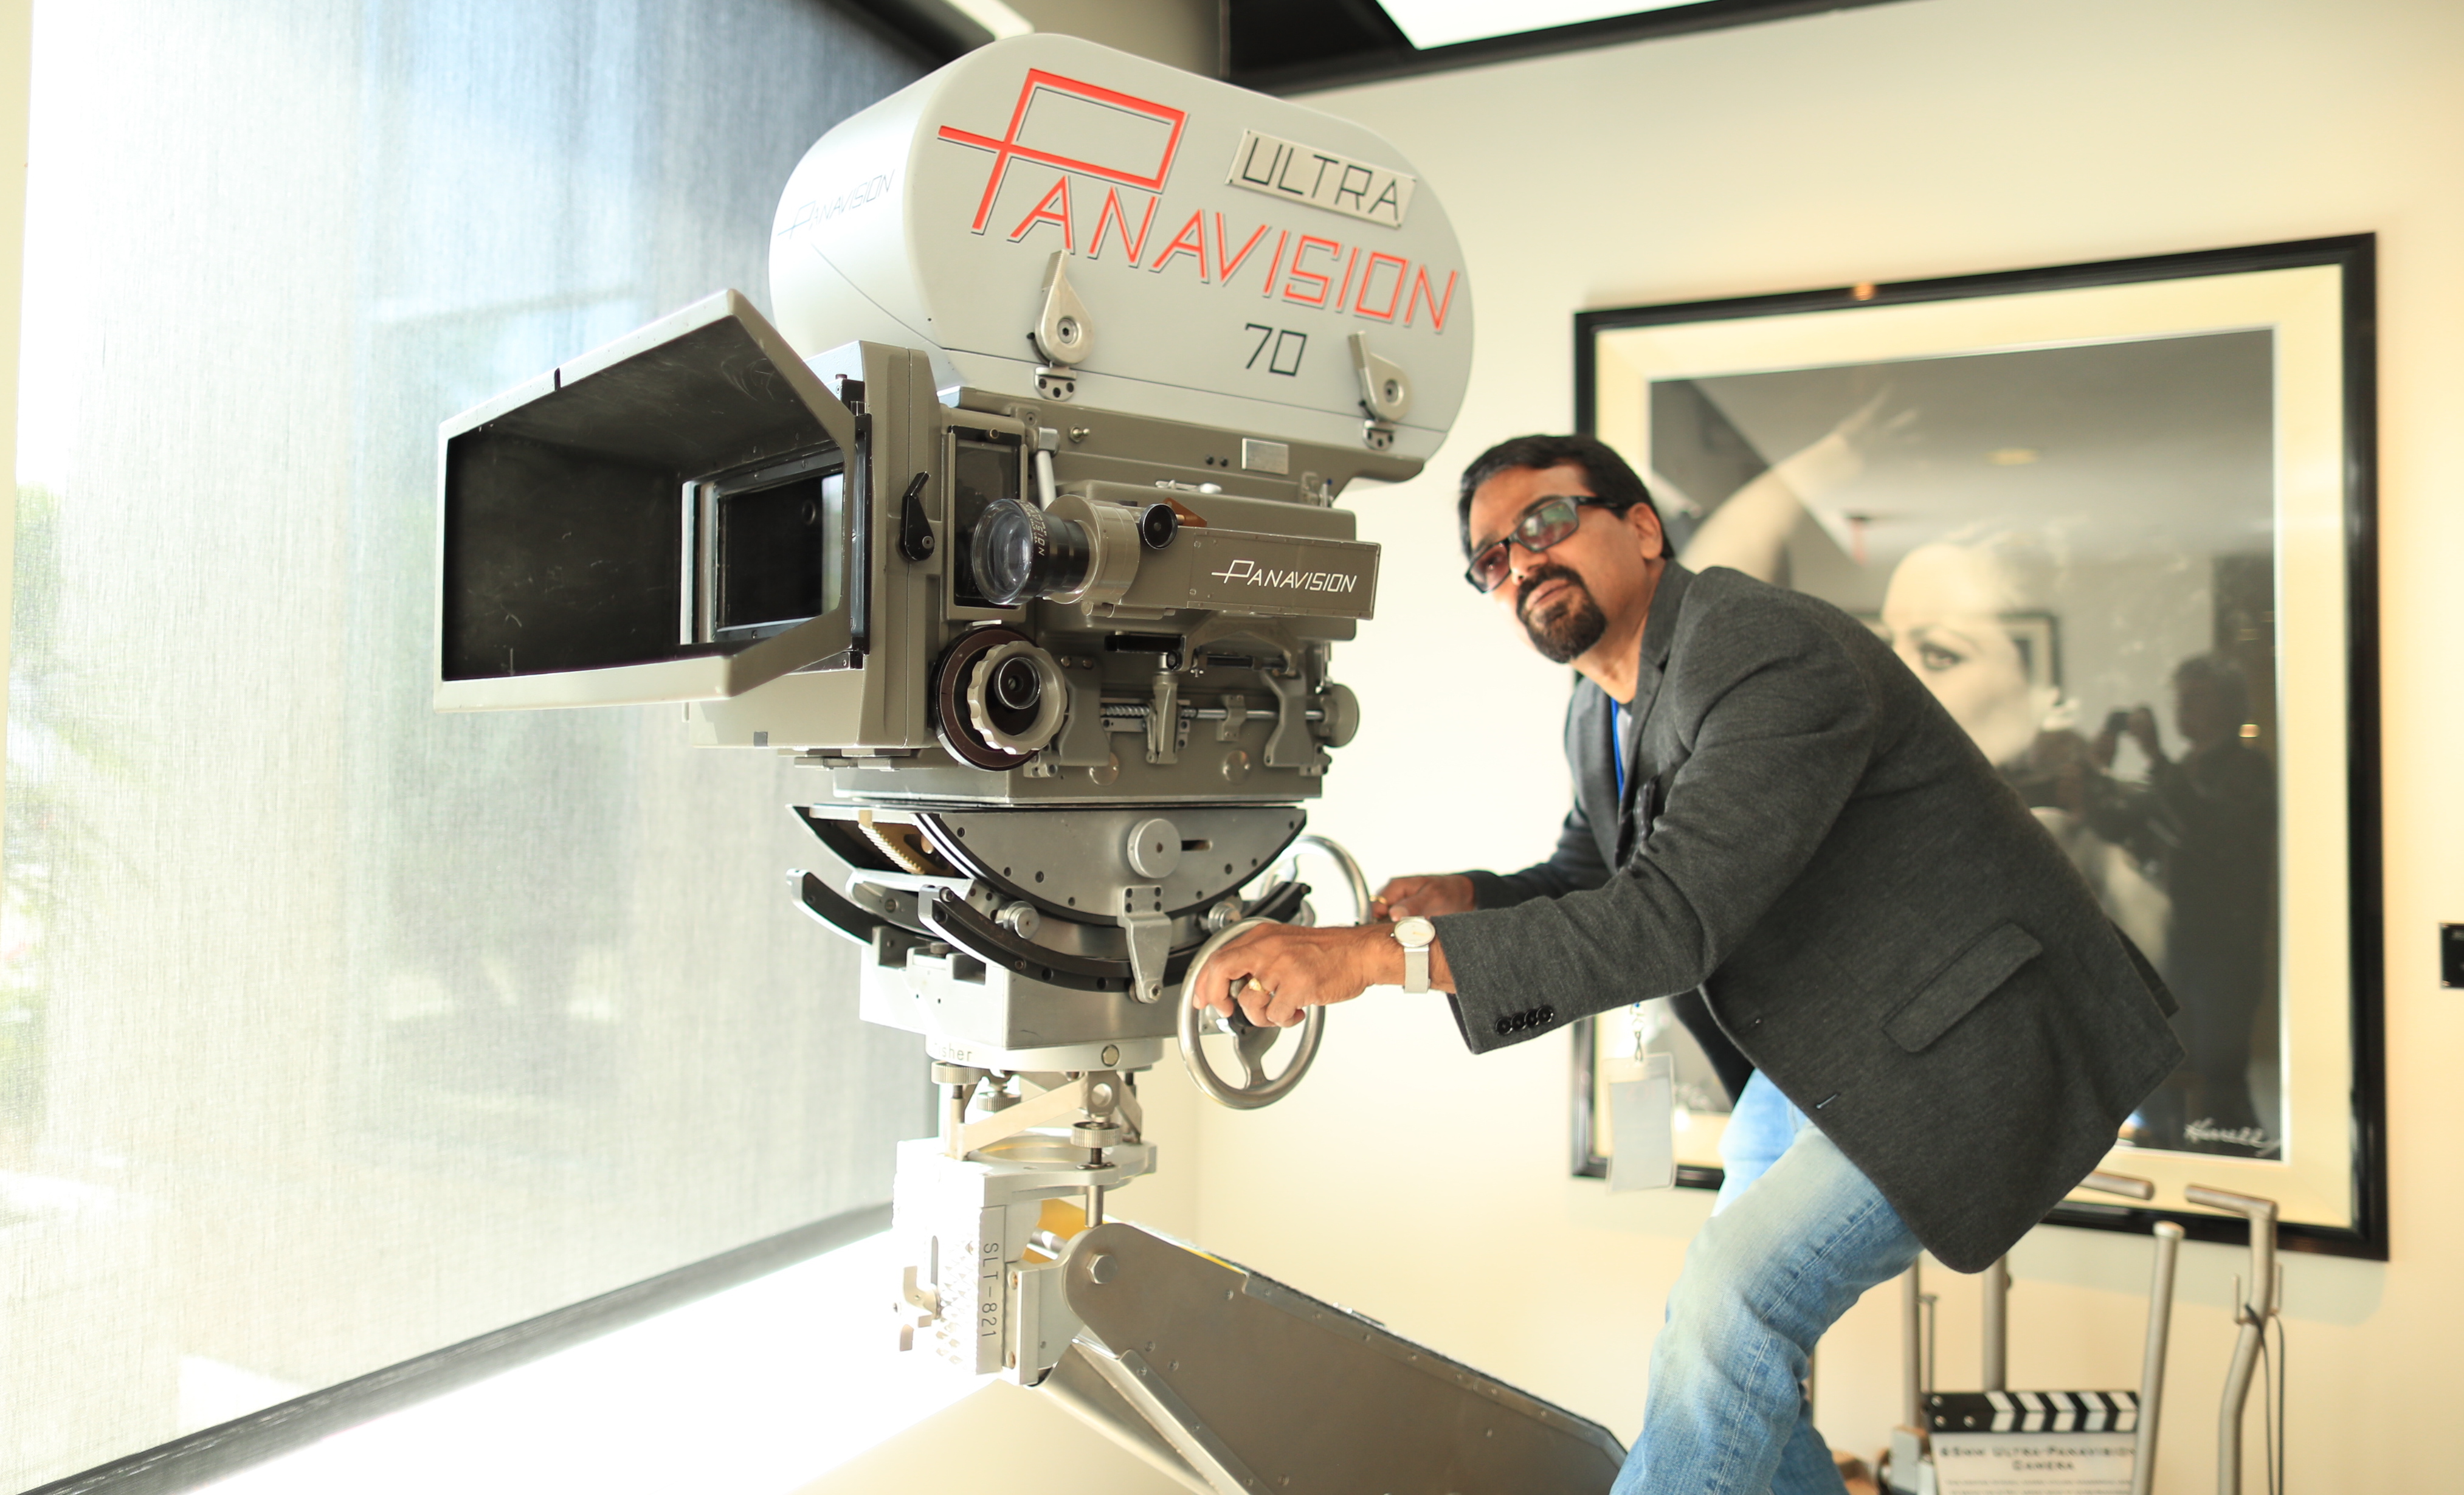 The Ultra Panavision 70 camera did not fail to impress. Photo by James Neihouse, ASC